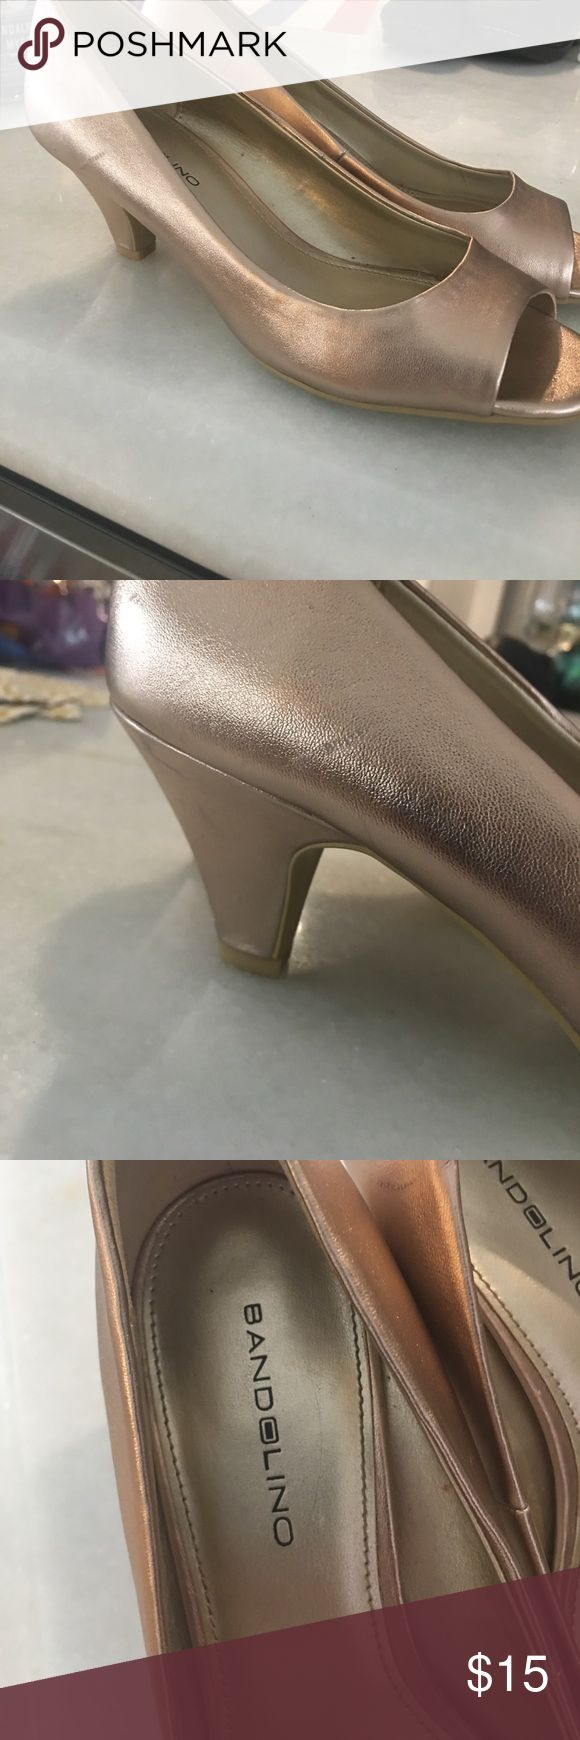 Rose gold peep toe heels Only worn once! These shoes are so comfortable and will go with so many colors Bandolino Shoes Heels